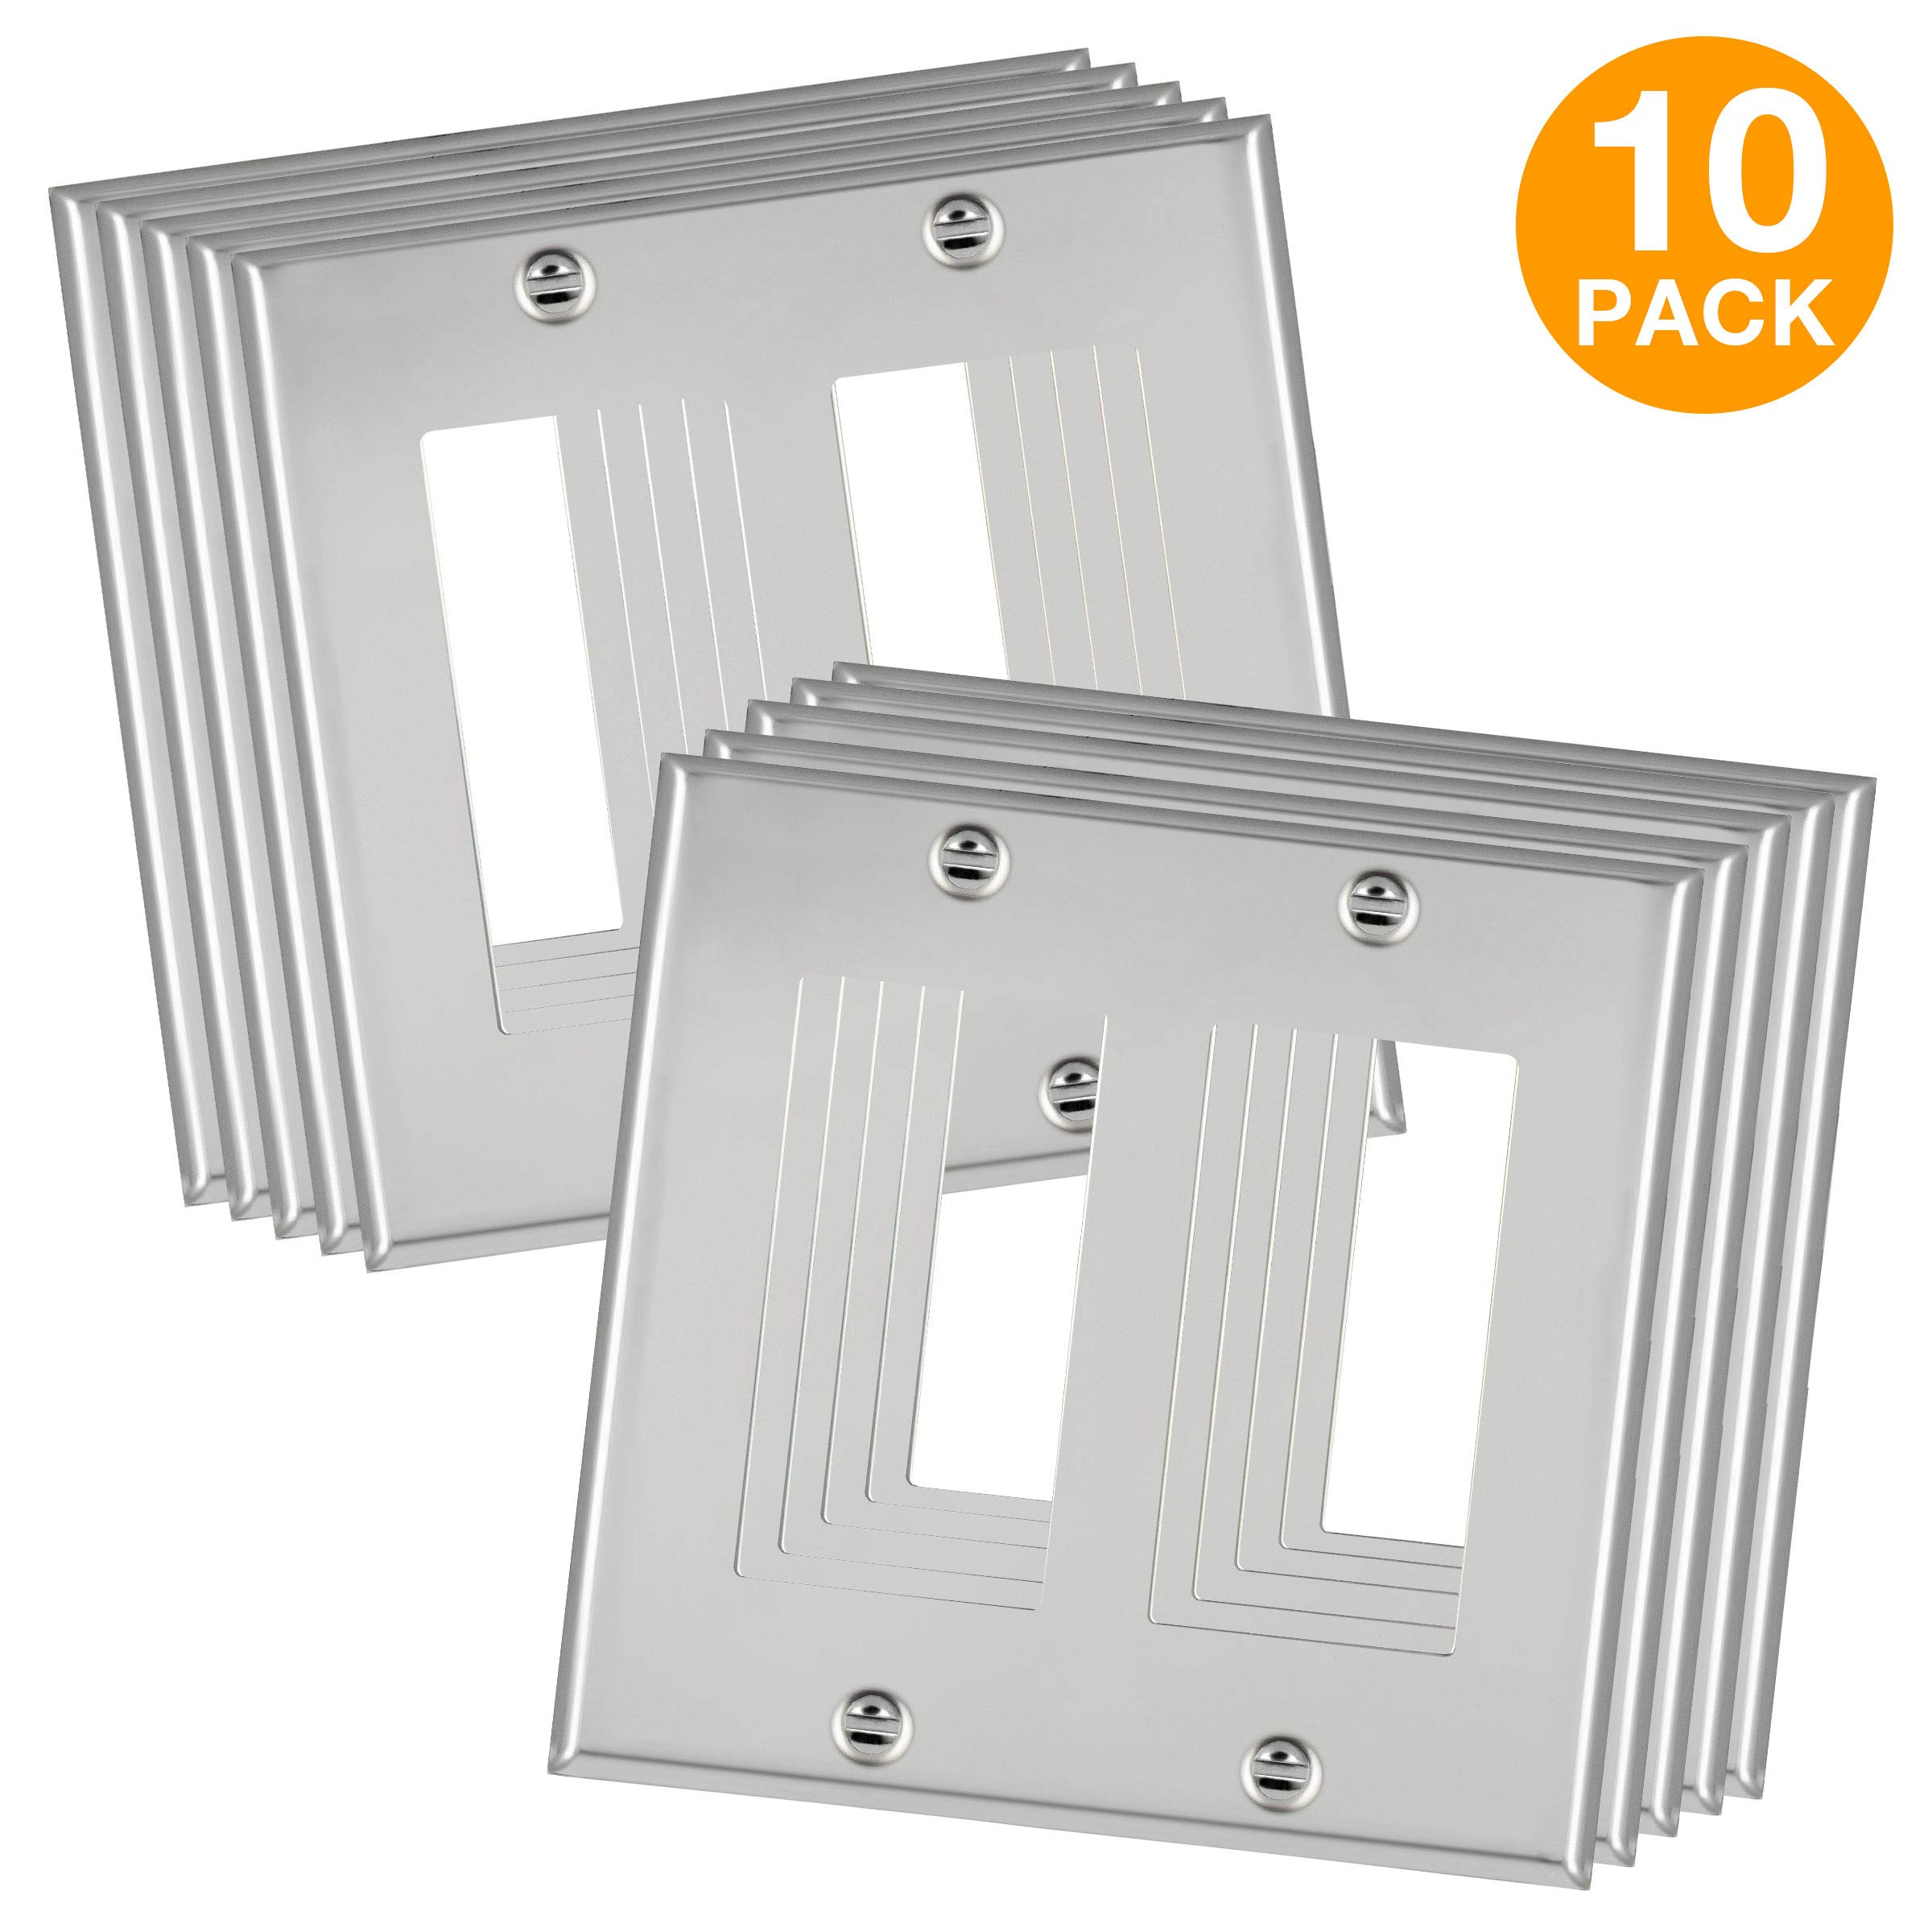 ENERLITES Metal Decorator Switch/Outlet Wall Plate, Corrosive Resistant, Size 2-Gang 4.50'' x 4.57'', 7732-PC-10PCS, 302 Polished Chrome (10 Pack)